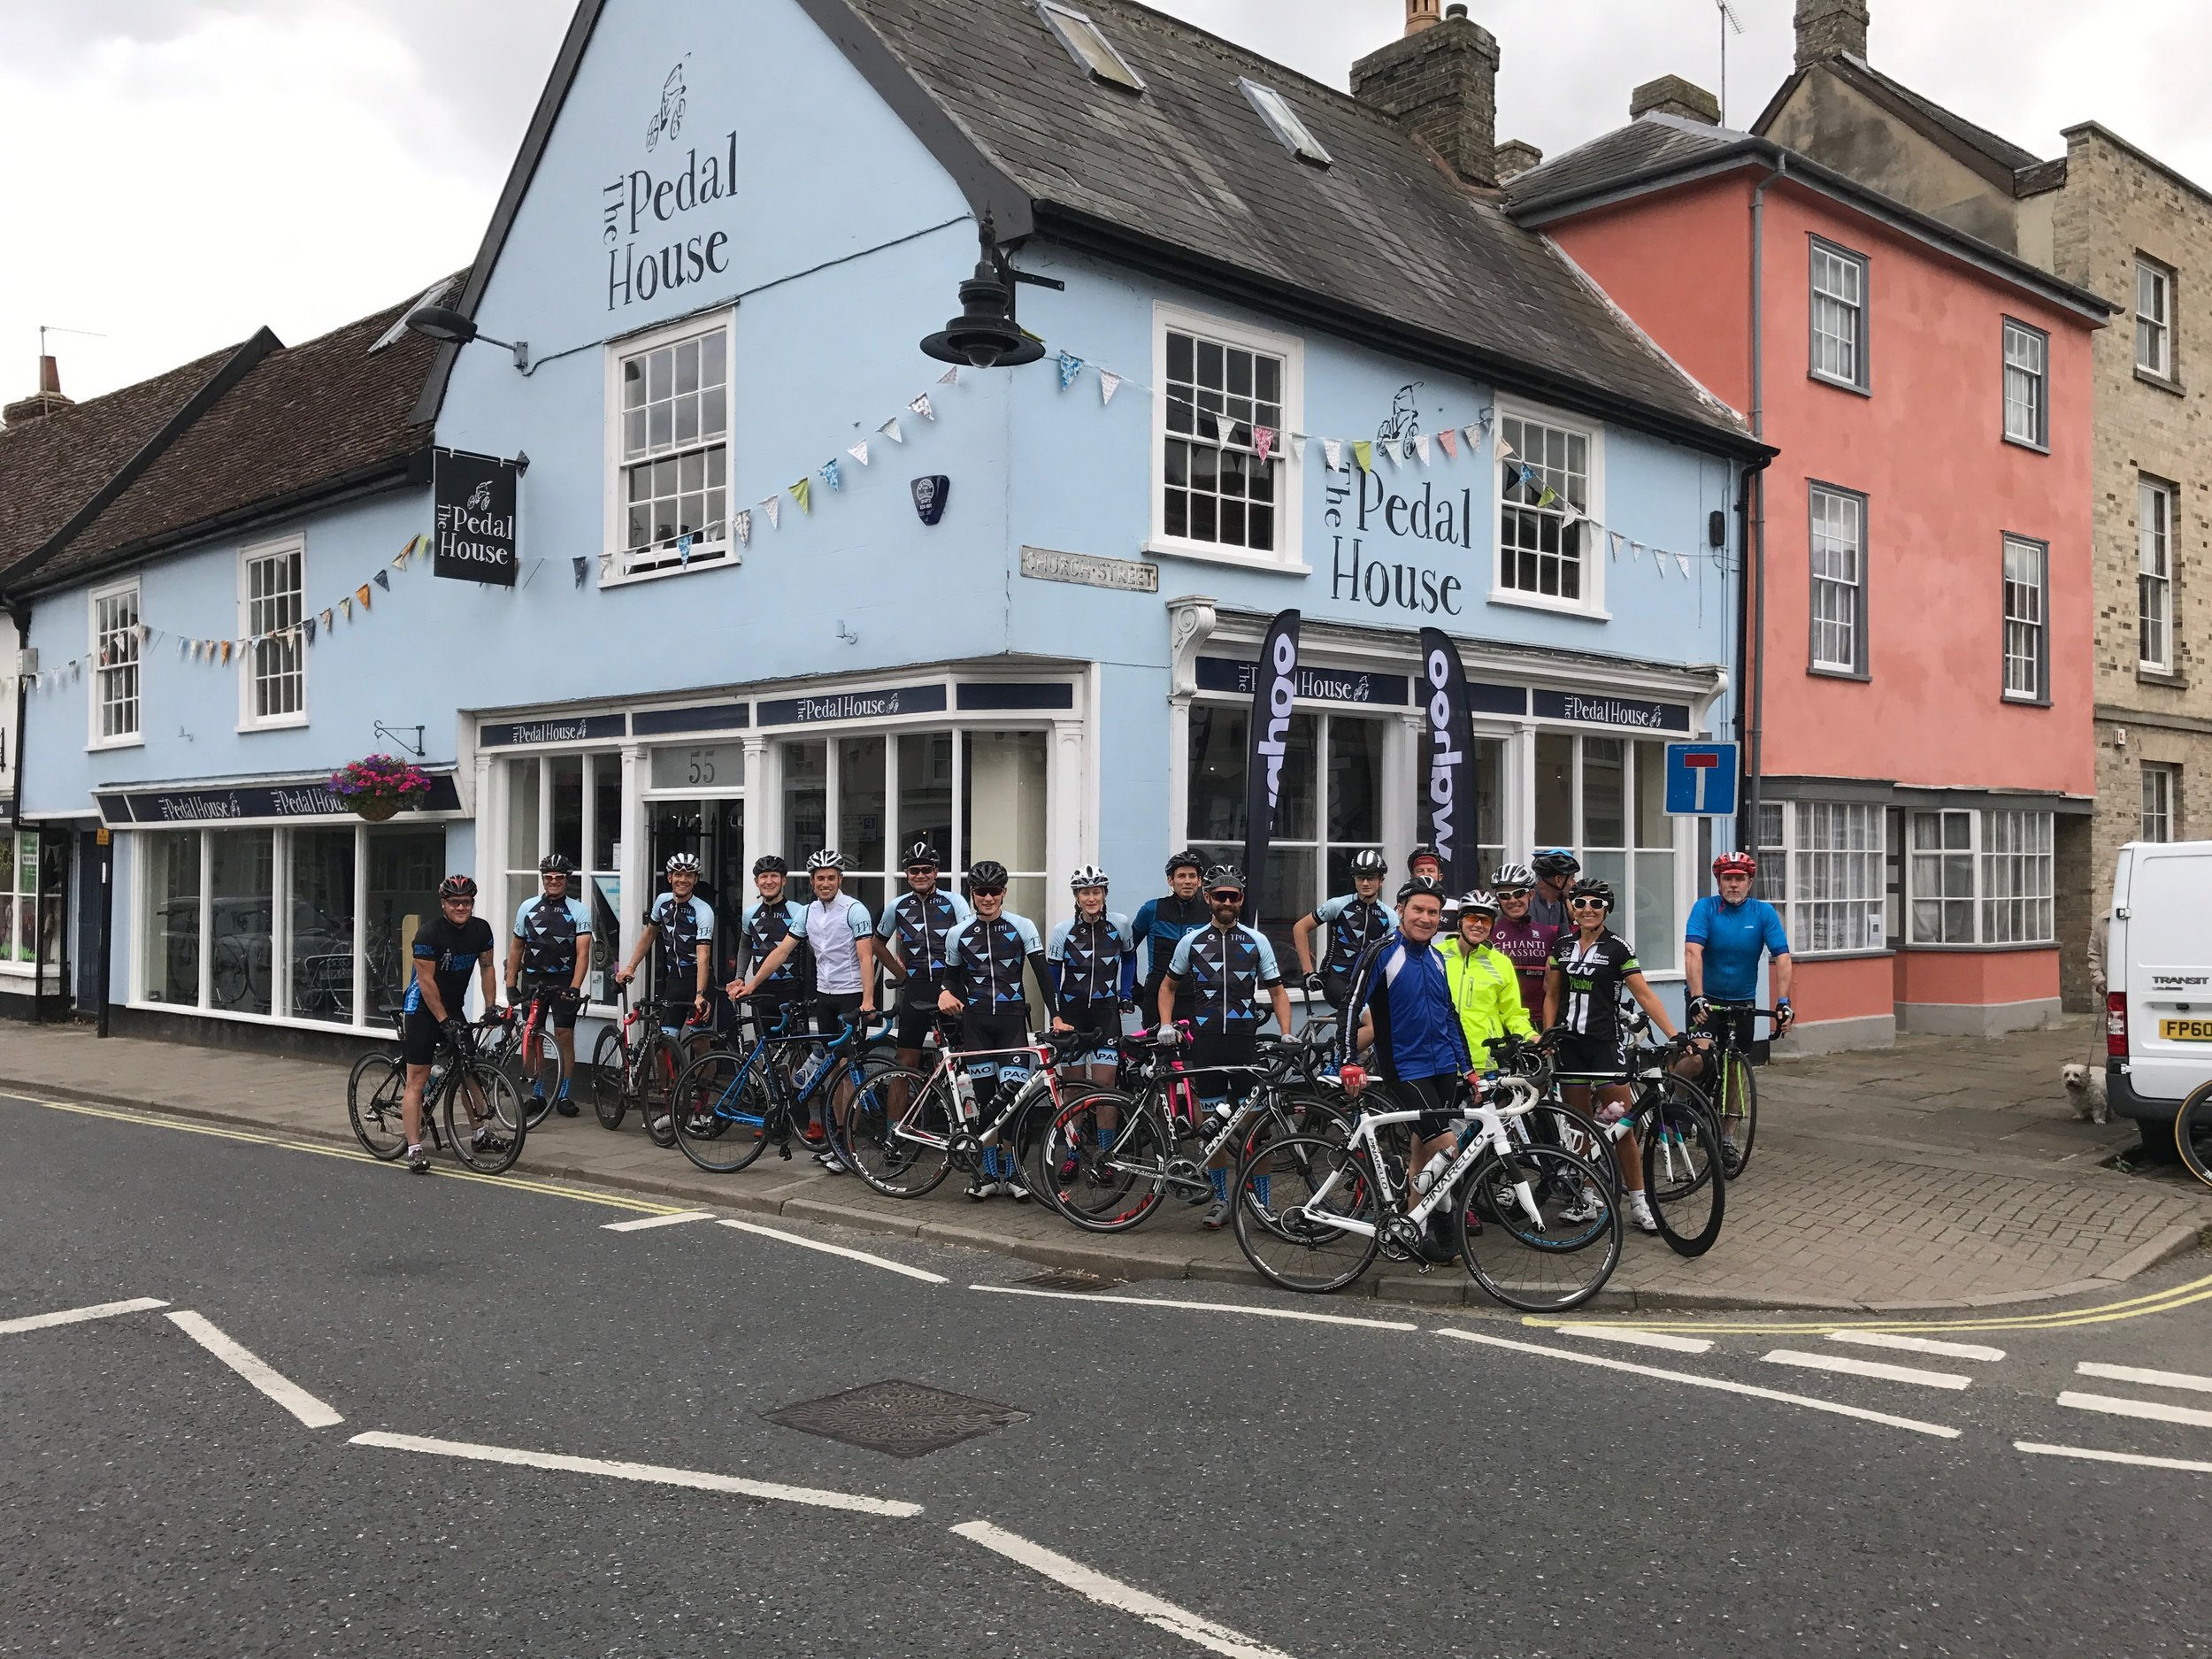 Join us for a summer ride - Throughout the summer we have a fortnightly social shop ride on Thursdays. We meet at the shop at around 5:45pm ready to start the ride promptly at 6:00pm. We have several different routes which we use, and they are all roughly 30 miles. The goal of this ride is for it to be SOCIAL, and we only ride as fast as the slowest rider. We have a no-drop policy, so no-one will be left behind, and we always end up back at the shop for a coffee (and often some cake!).